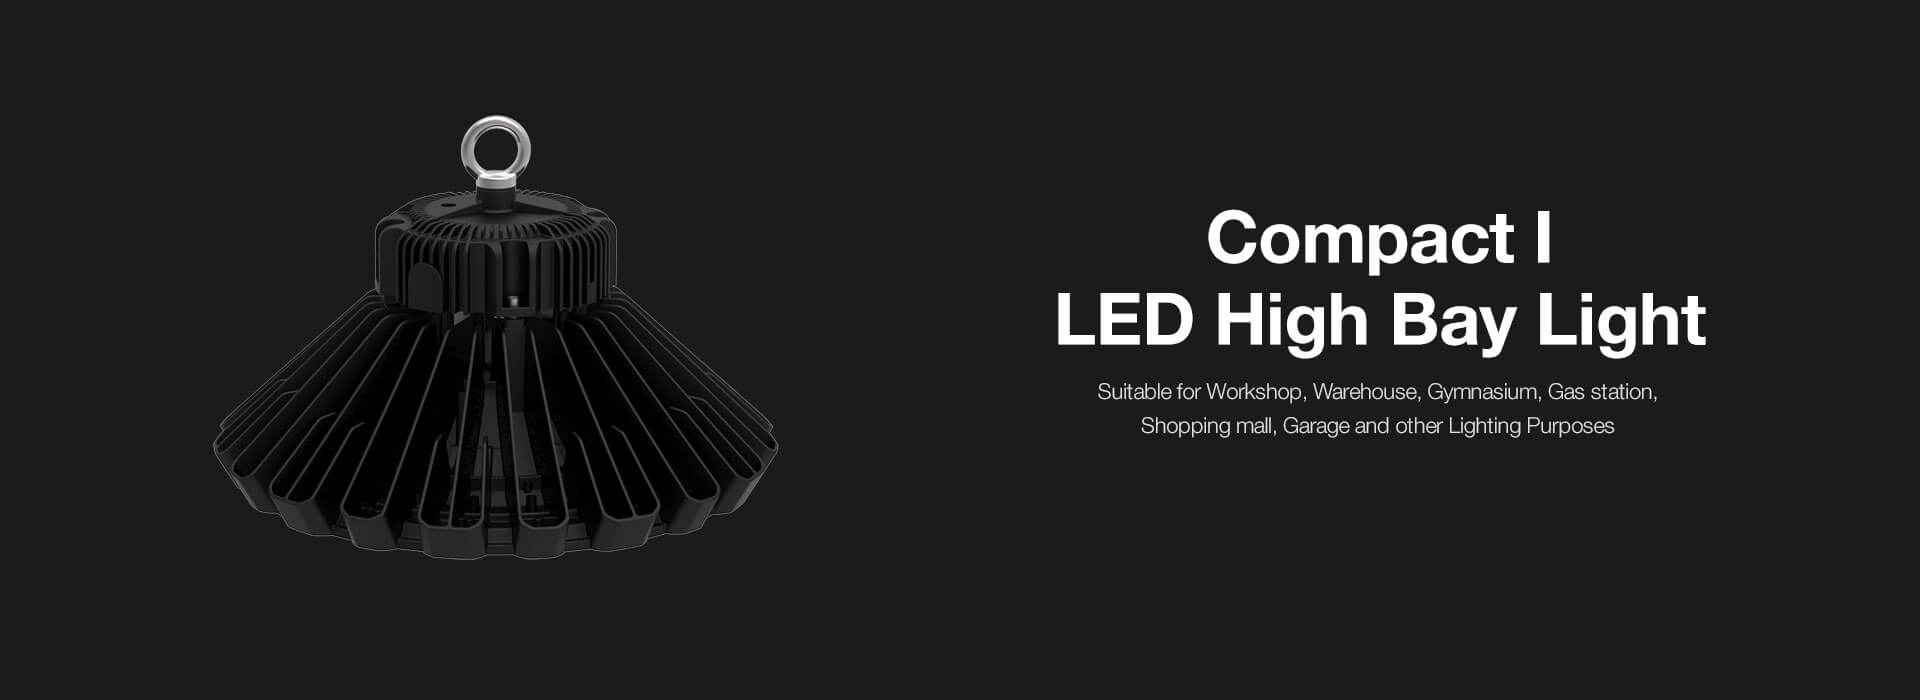 Compact I LED High Bay Light